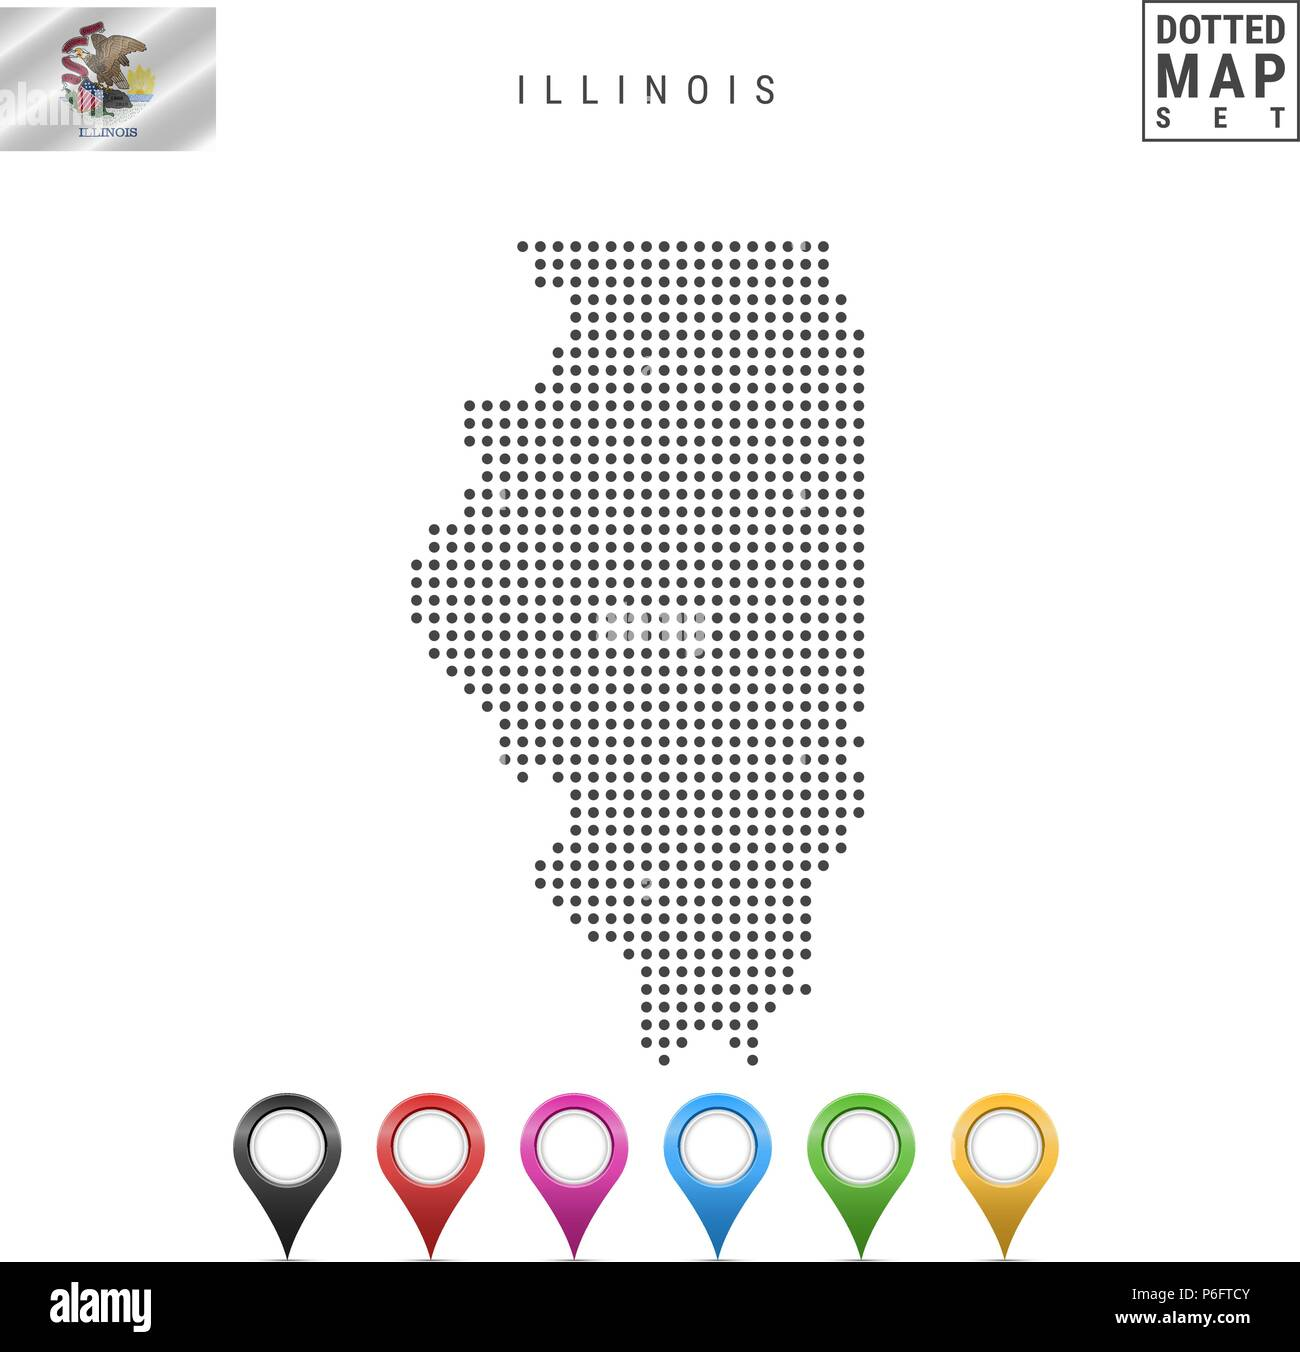 Dots Pattern Vector Map of Illinois. Stylized Silhouette of Illinois. Flag of Illinois. Set of Multicolored Map Markers - Stock Vector